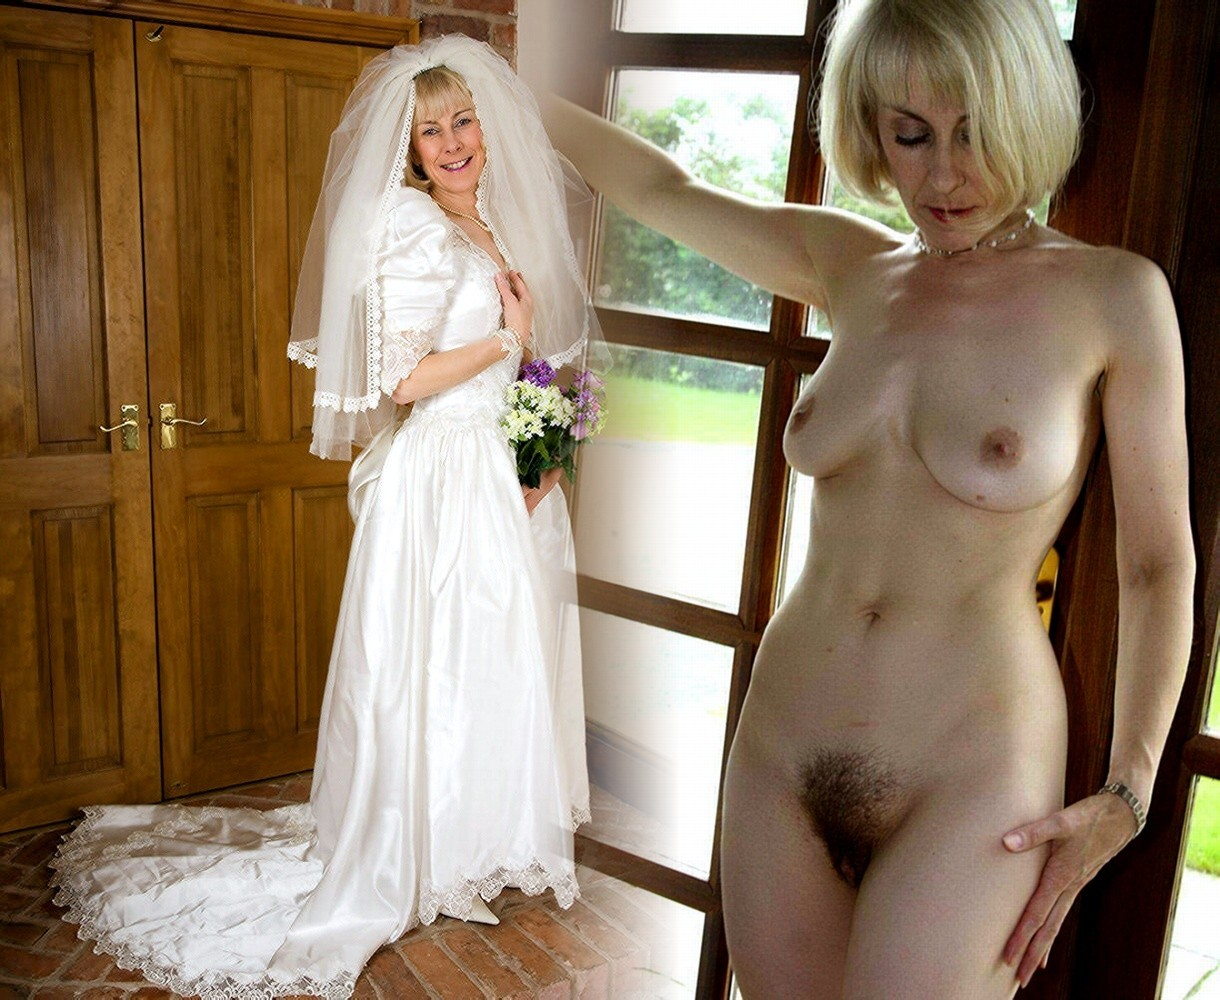 Naked Wedding Dress Is The Latest Trend In Bridal Wear